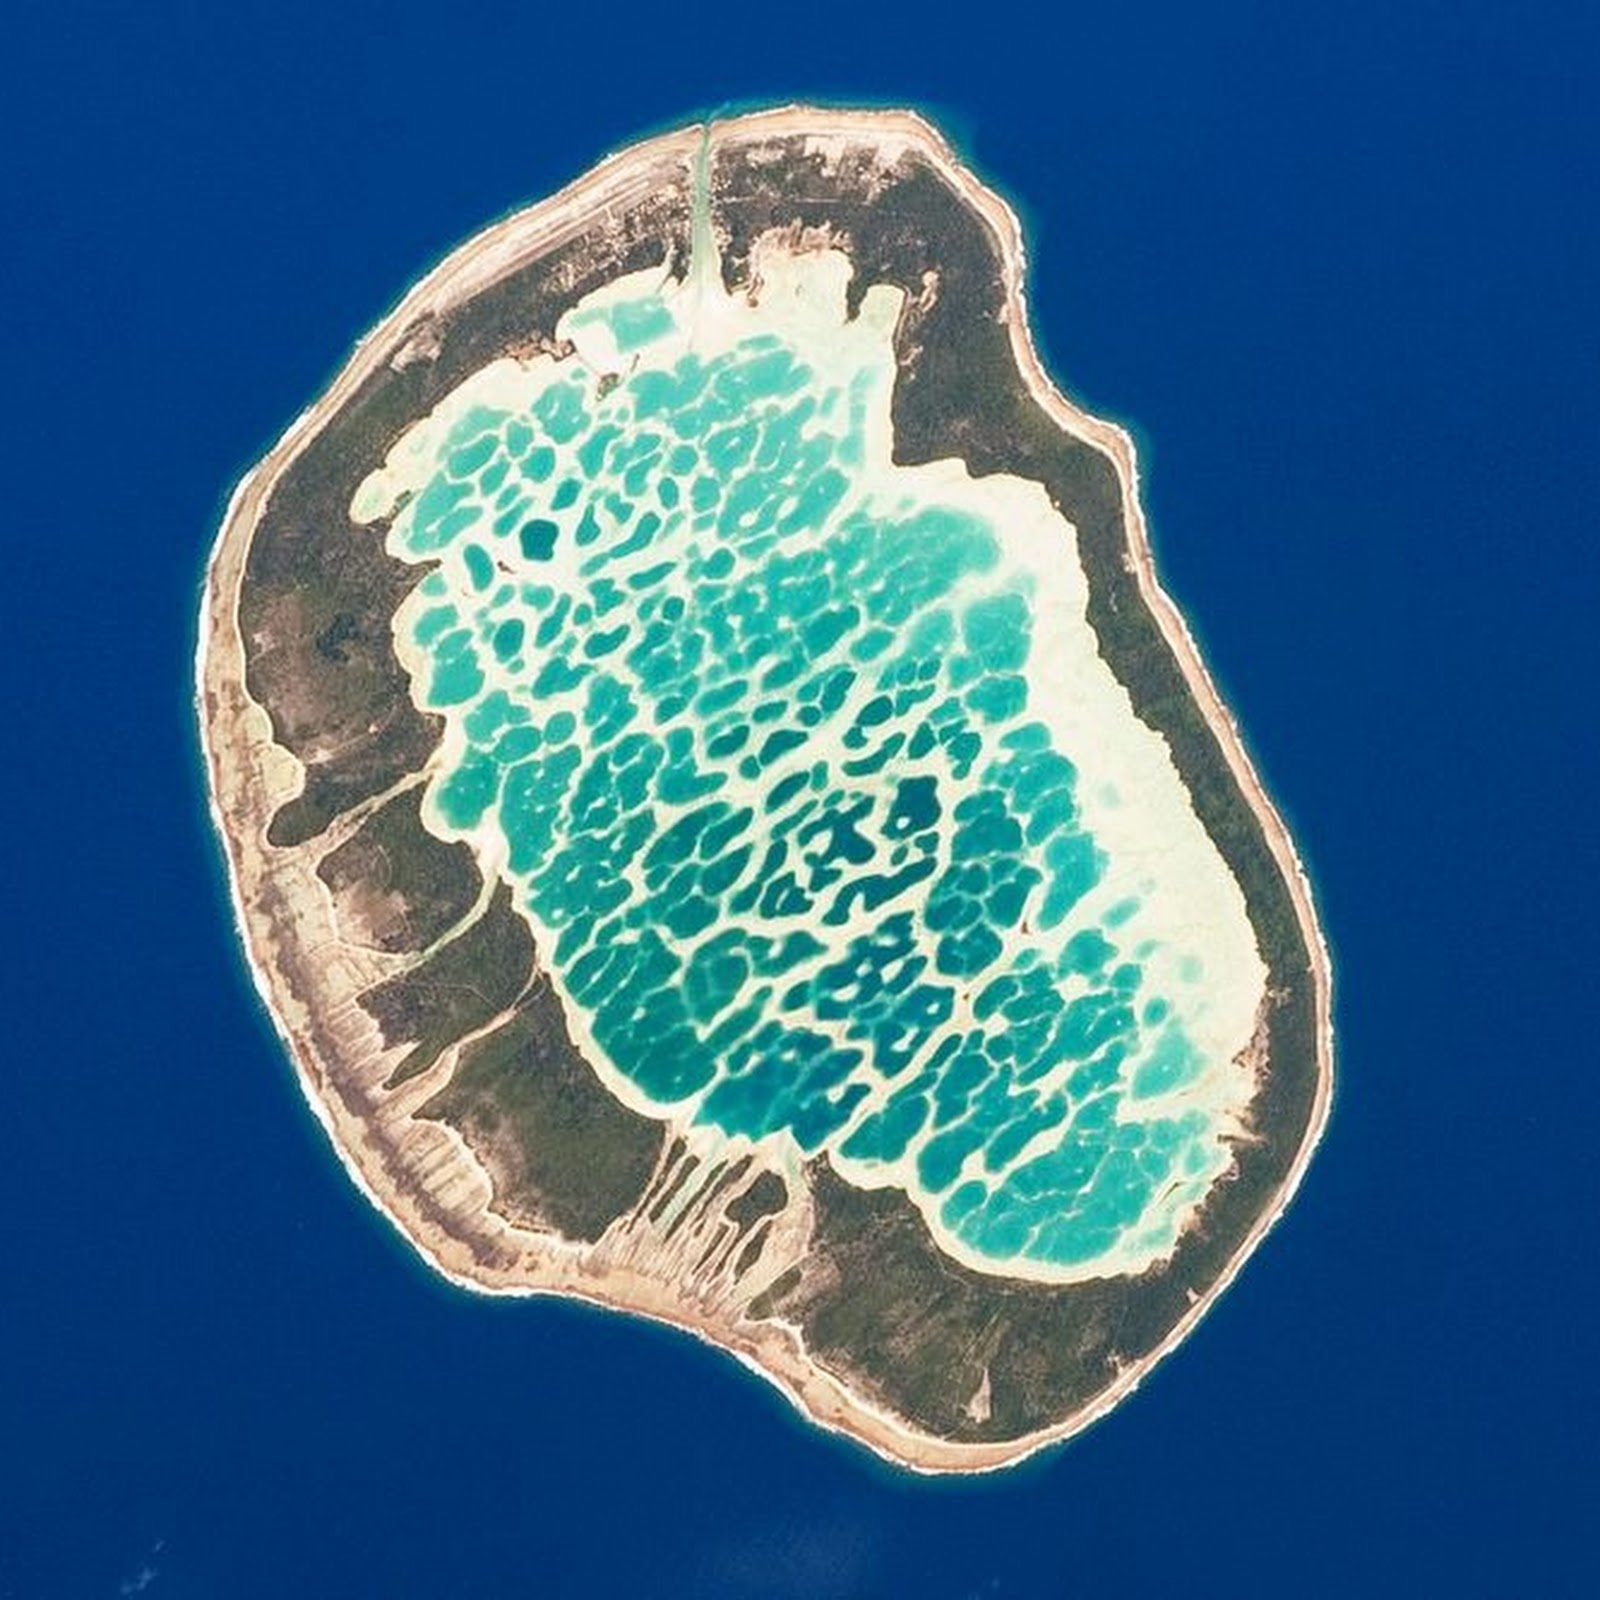 The Reticulated Lagoon of Mataiva Atoll